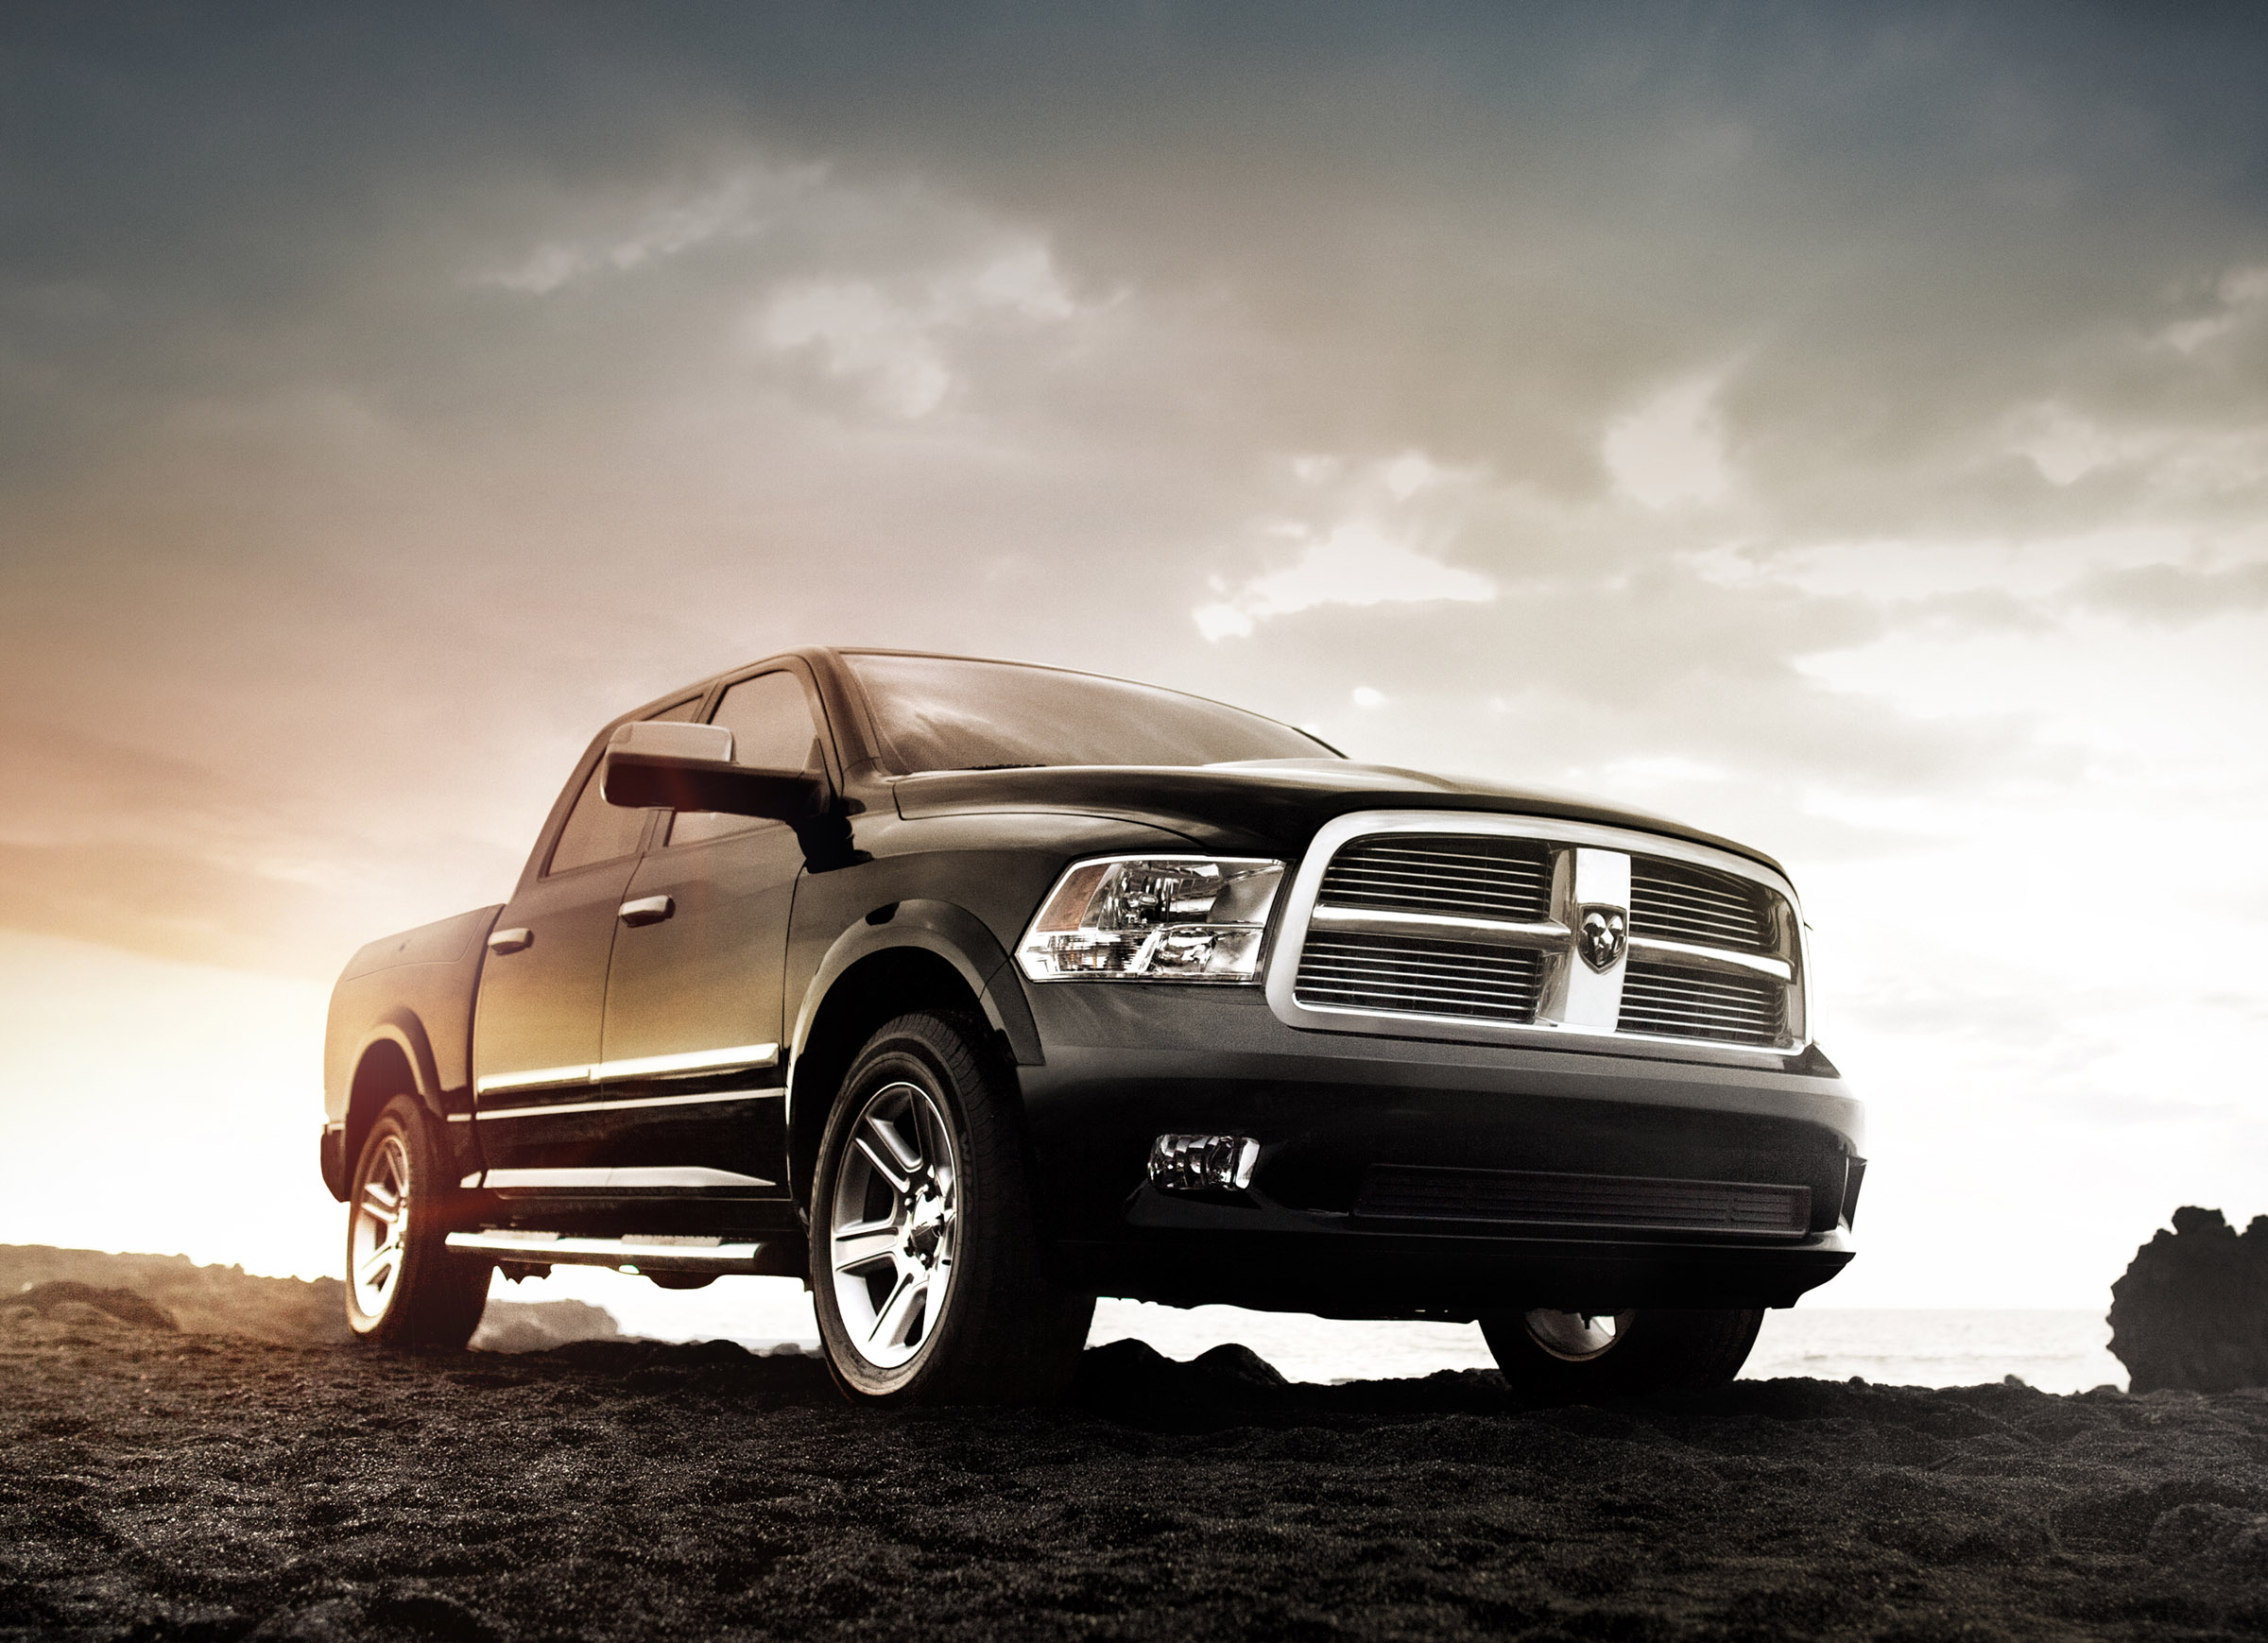 2012 ram 1500 laramie limited. Black Bedroom Furniture Sets. Home Design Ideas